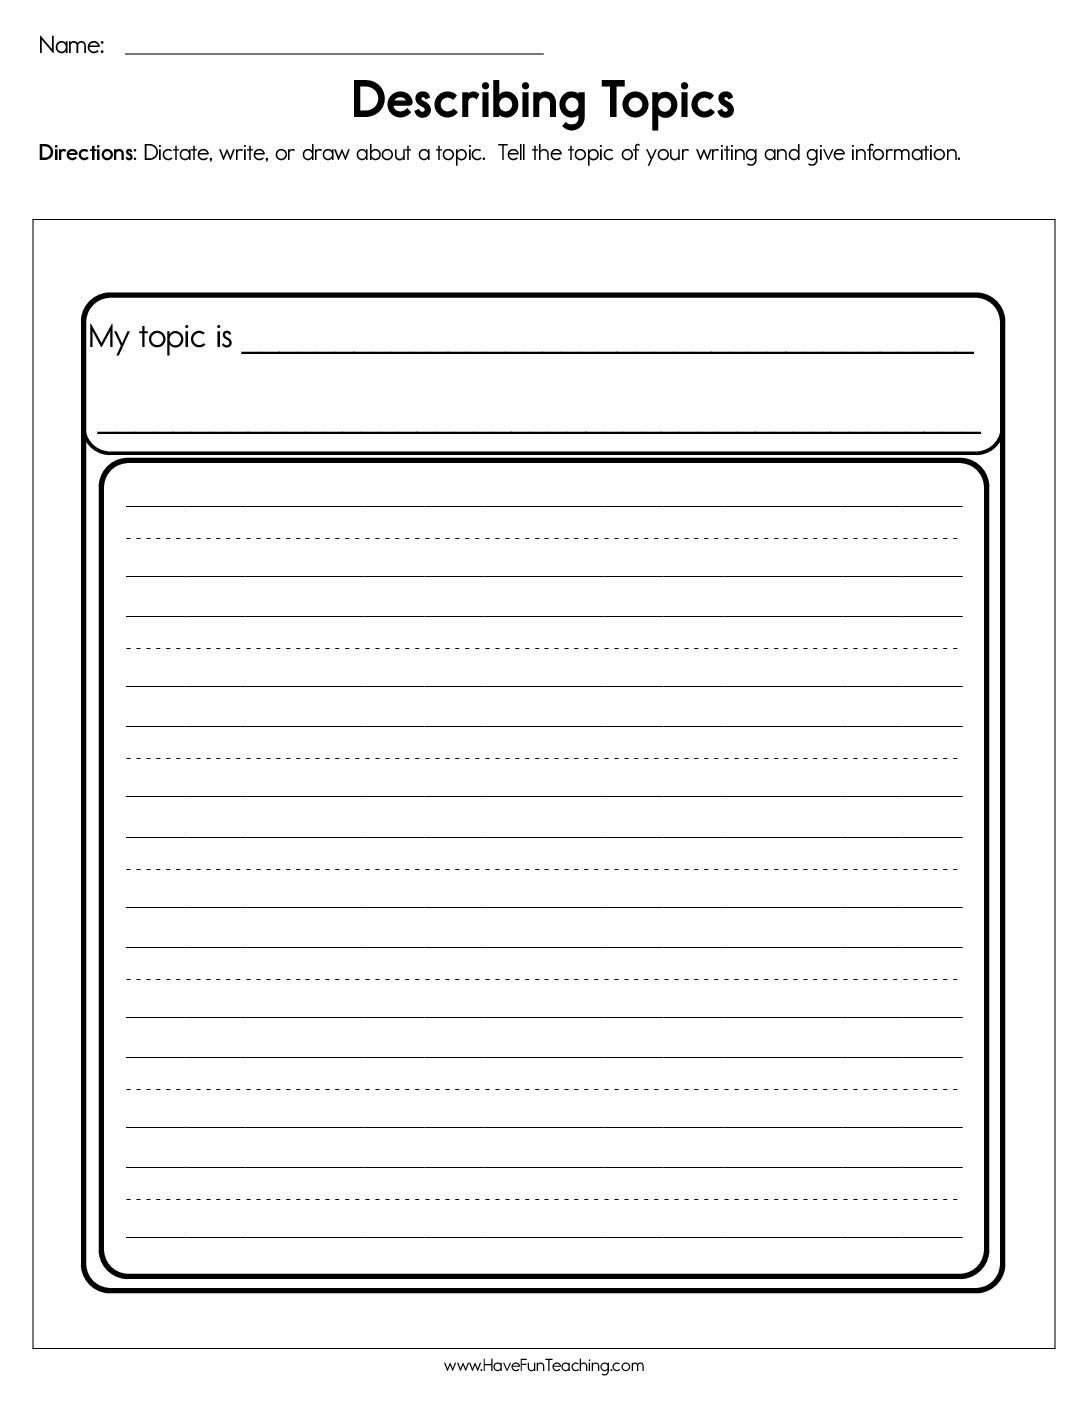 Writing Worksheets Image By Have Fun Teaching On Writing